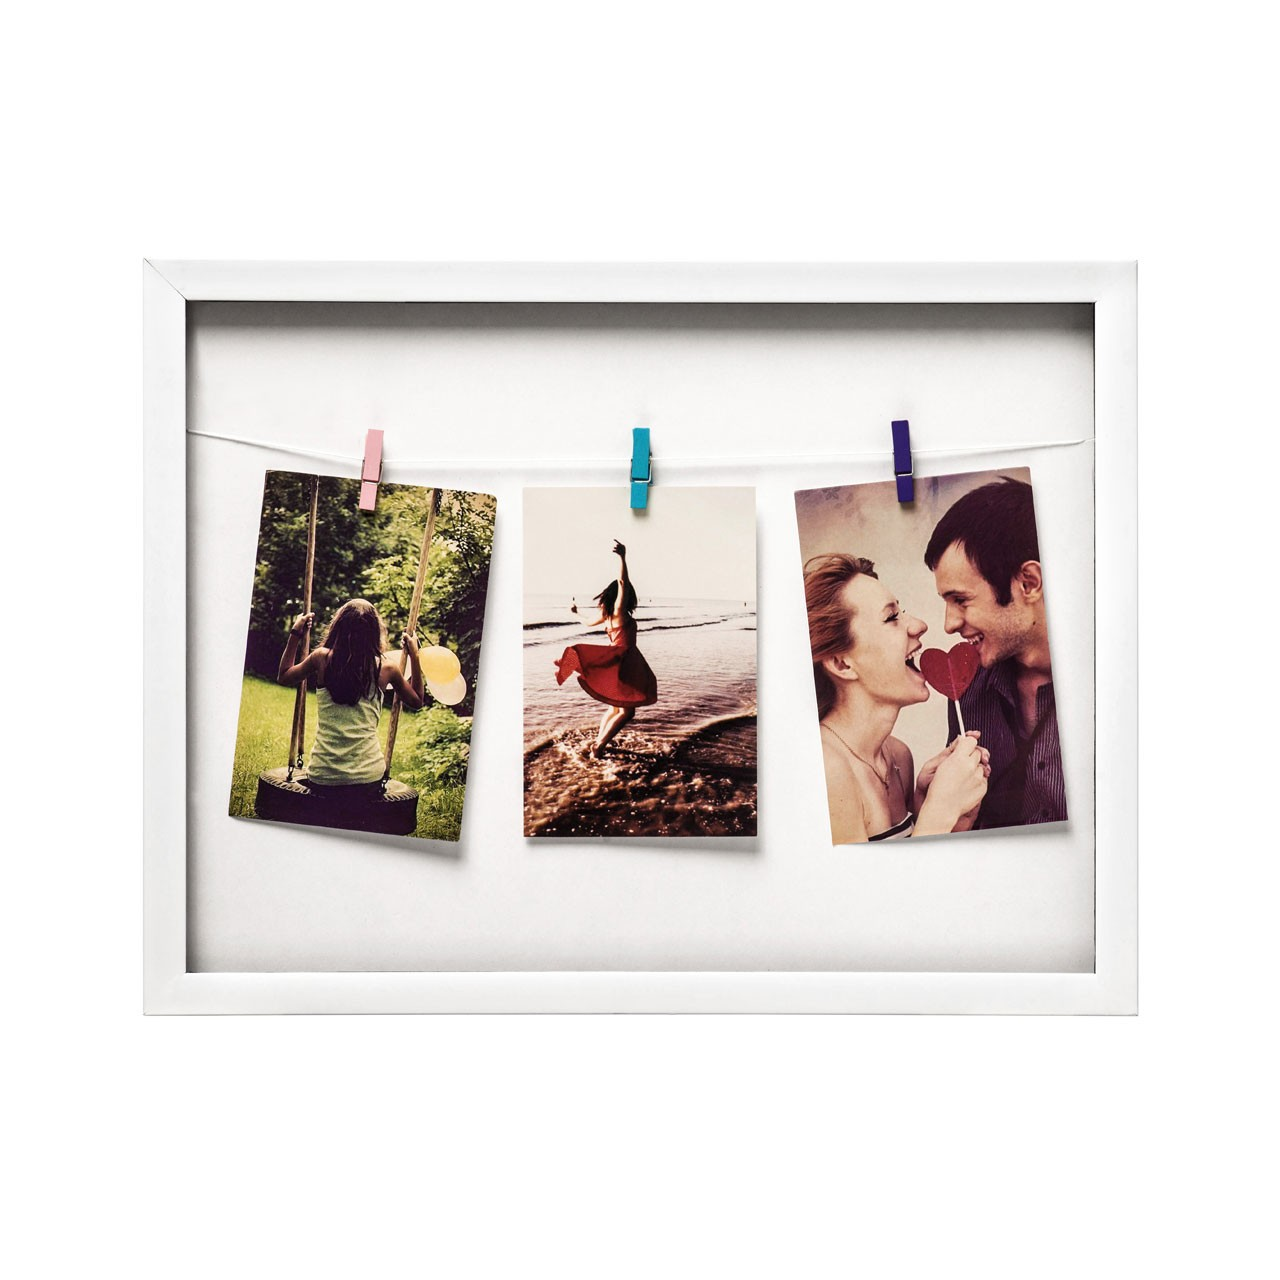 Prime Furnishing 3 Peg Washing Line Plastic Photo Frame - White